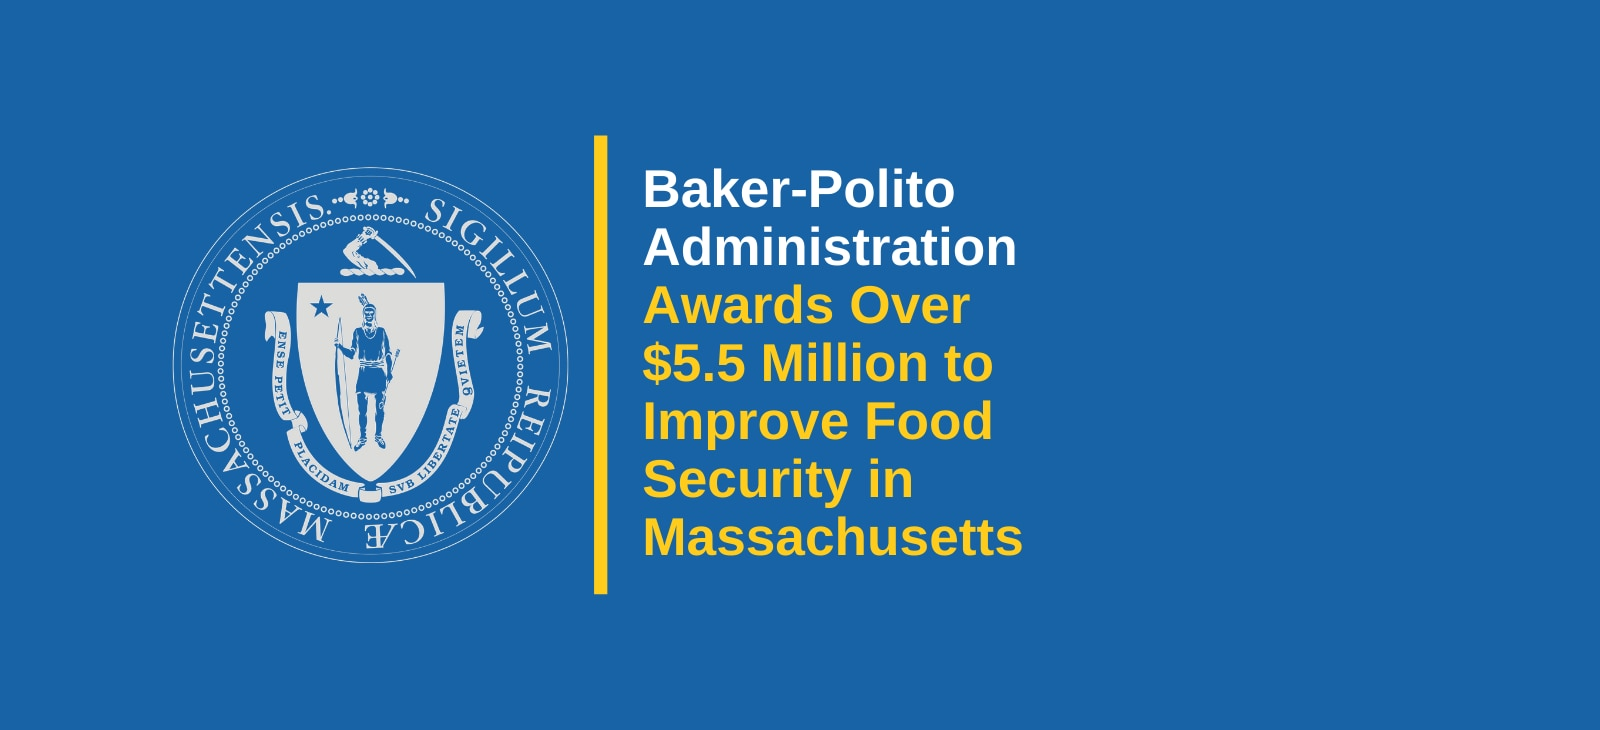 Baker-Polito Administration Awards Over $5.5 Million to Improve Food Security in Massachusetts